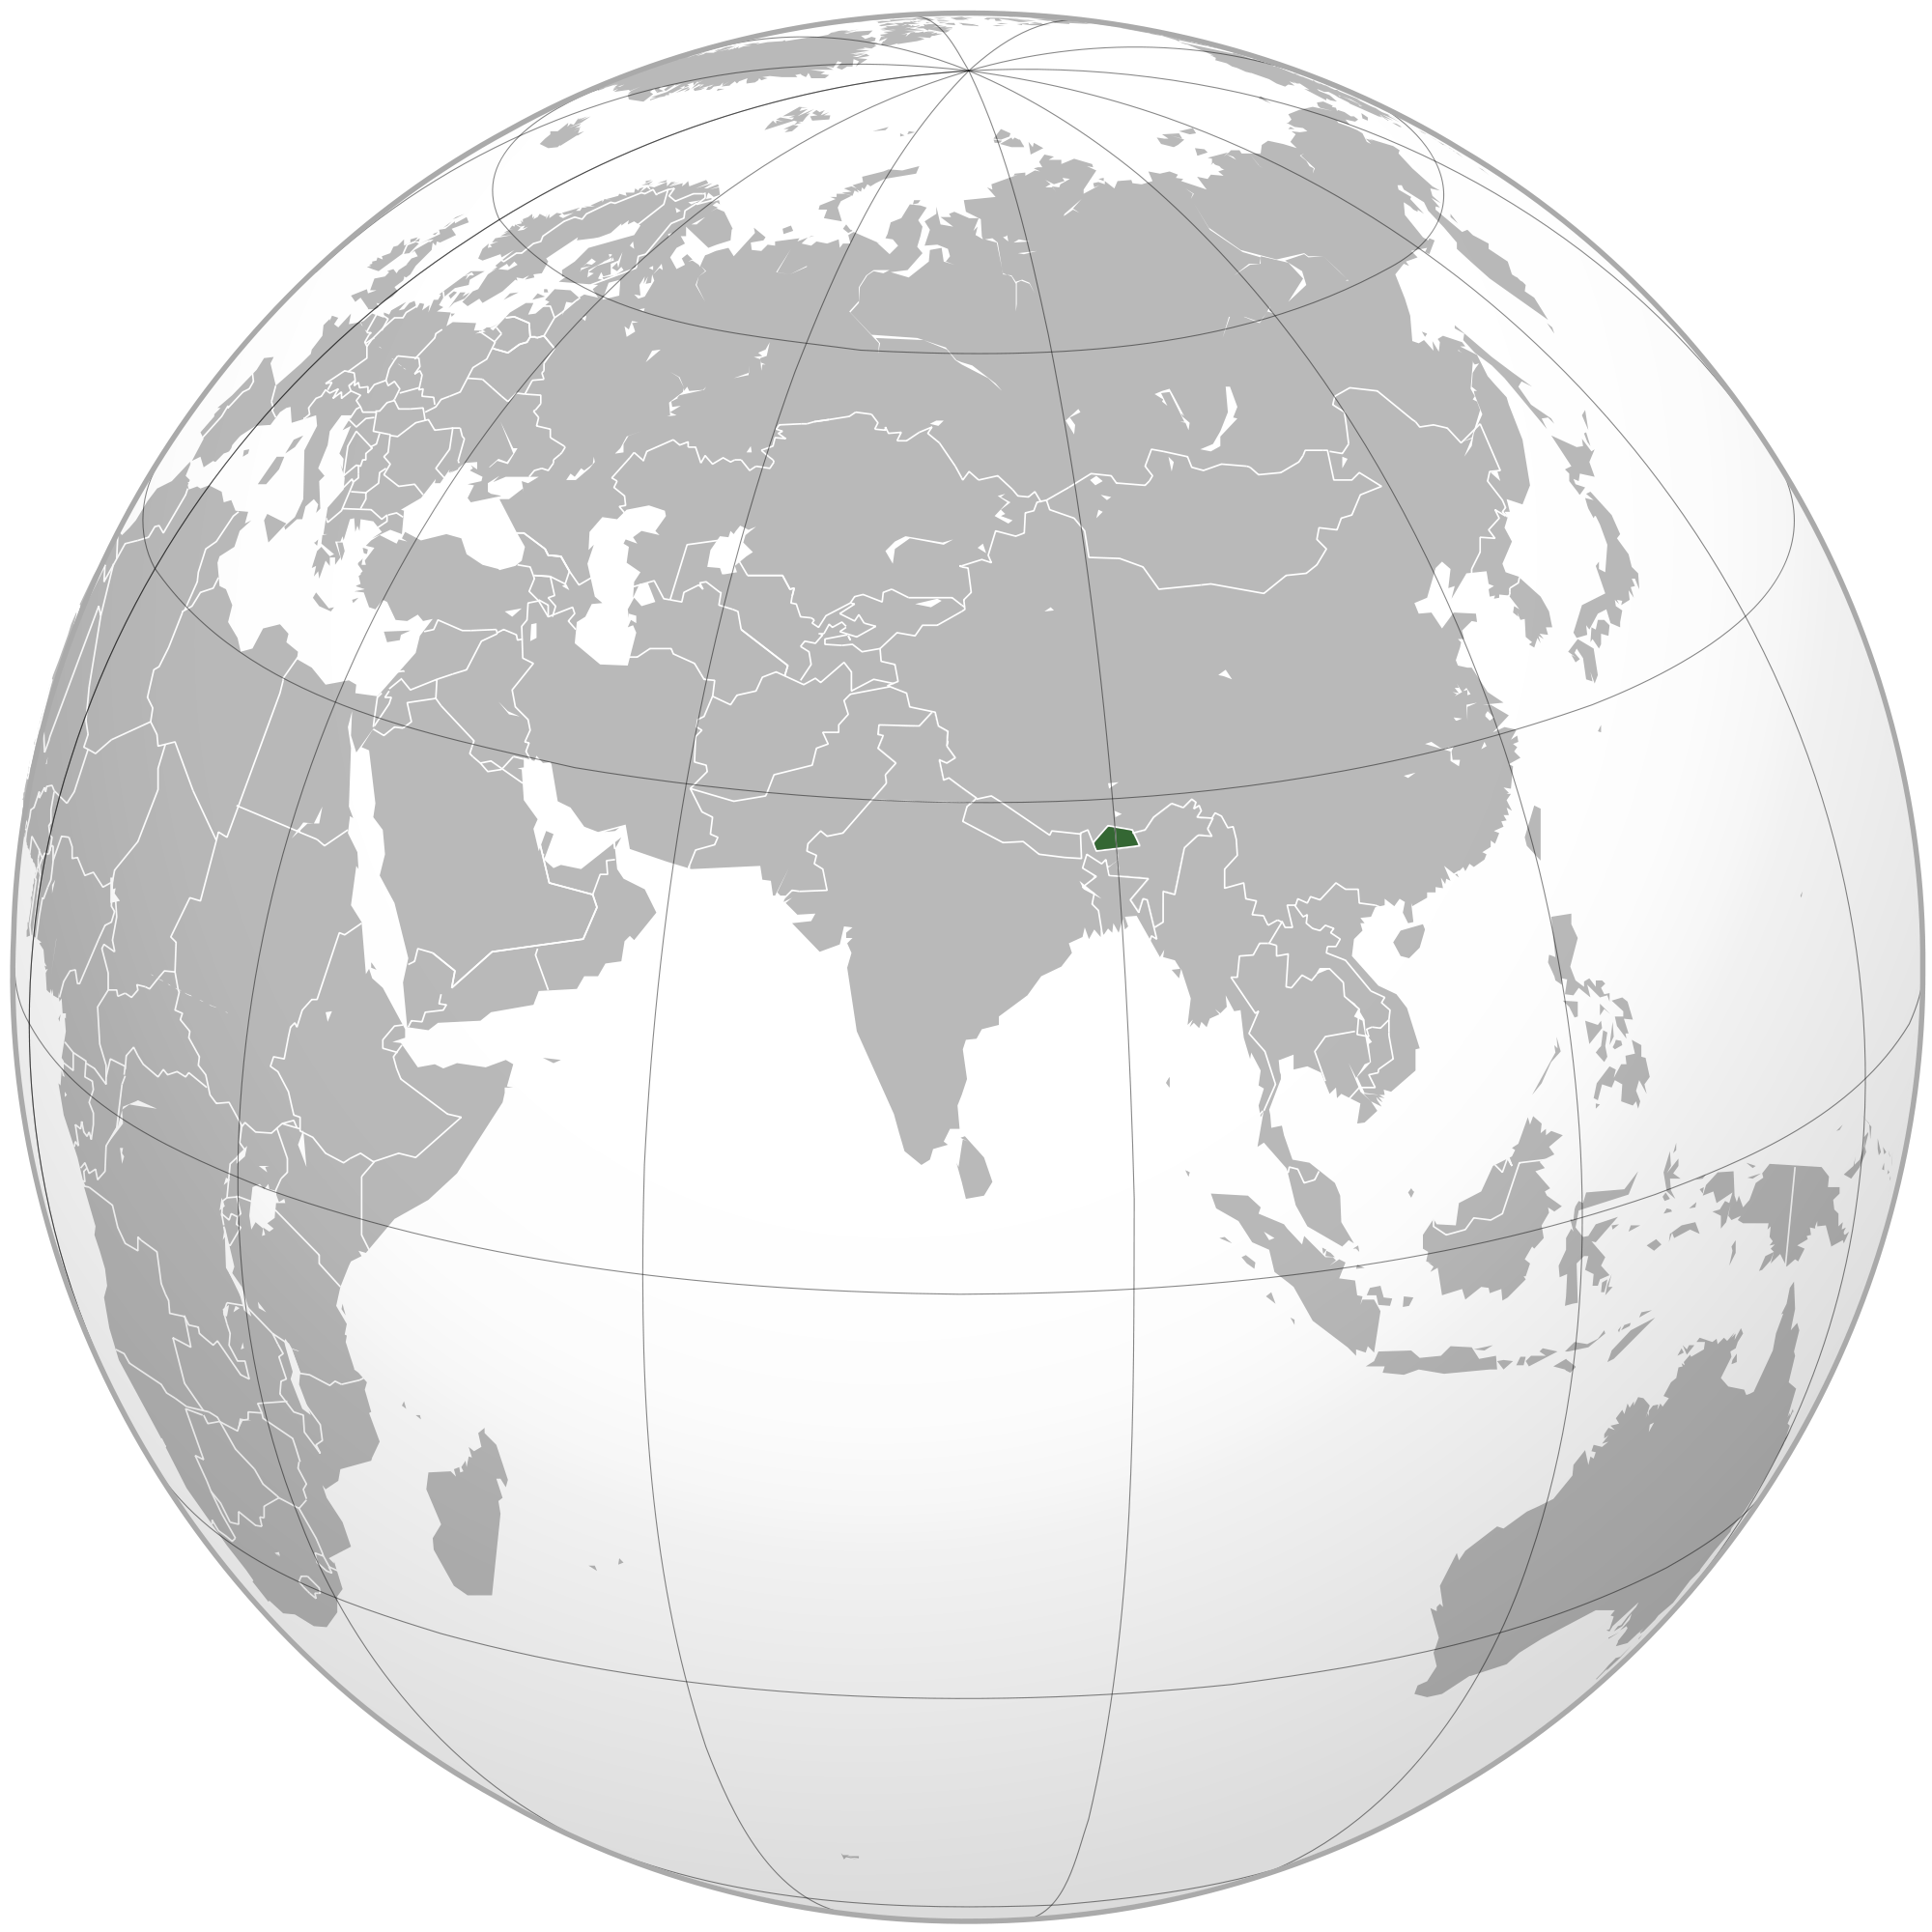 Location of the Bhutan in the World Map